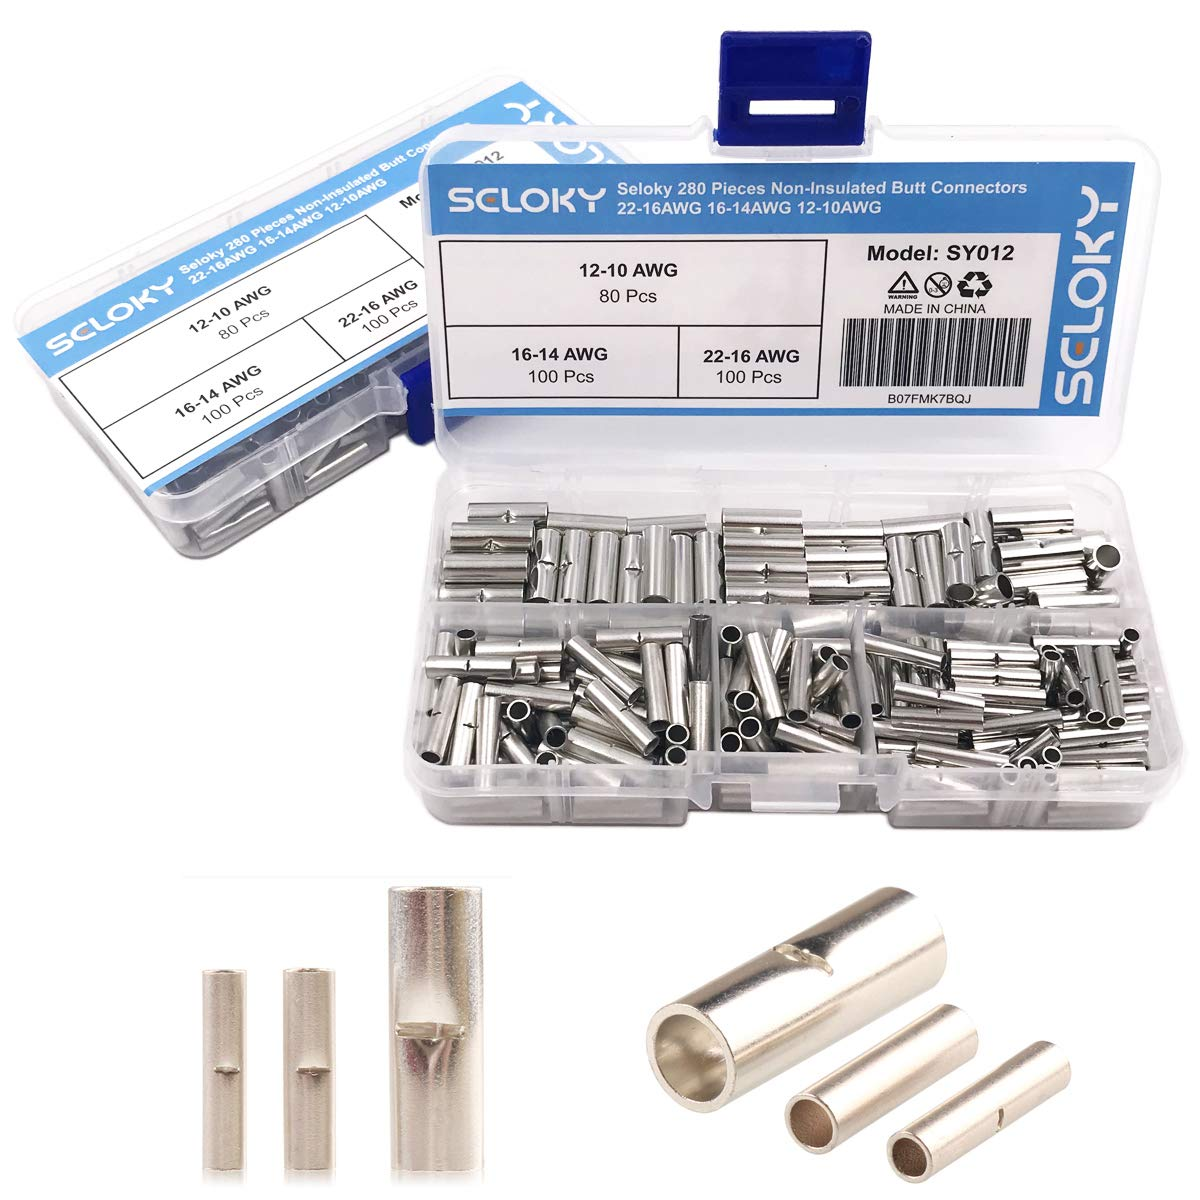 Seloky 280 Pieces Non-Insulated Butt Connectors Non-insulated Wire Ferrule Cable Crimp Terminal Kit for Electrical Splice DIY(22-16AWG 16-14AWG 12-10AWG)